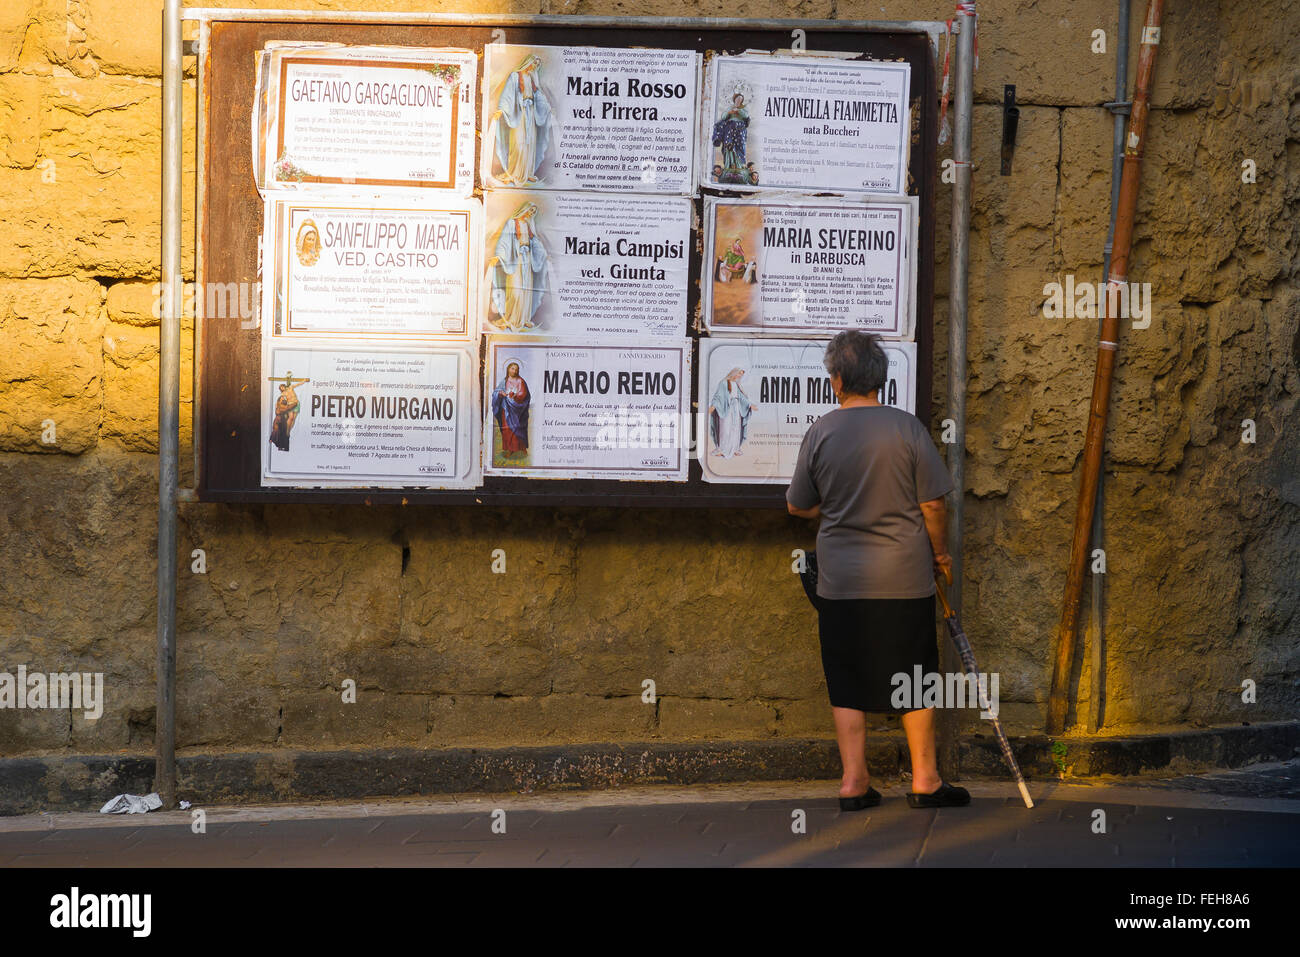 A senior local woman in Enna, Sicily, pauses to read the latest public notifications of funerals in the community. - Stock Image